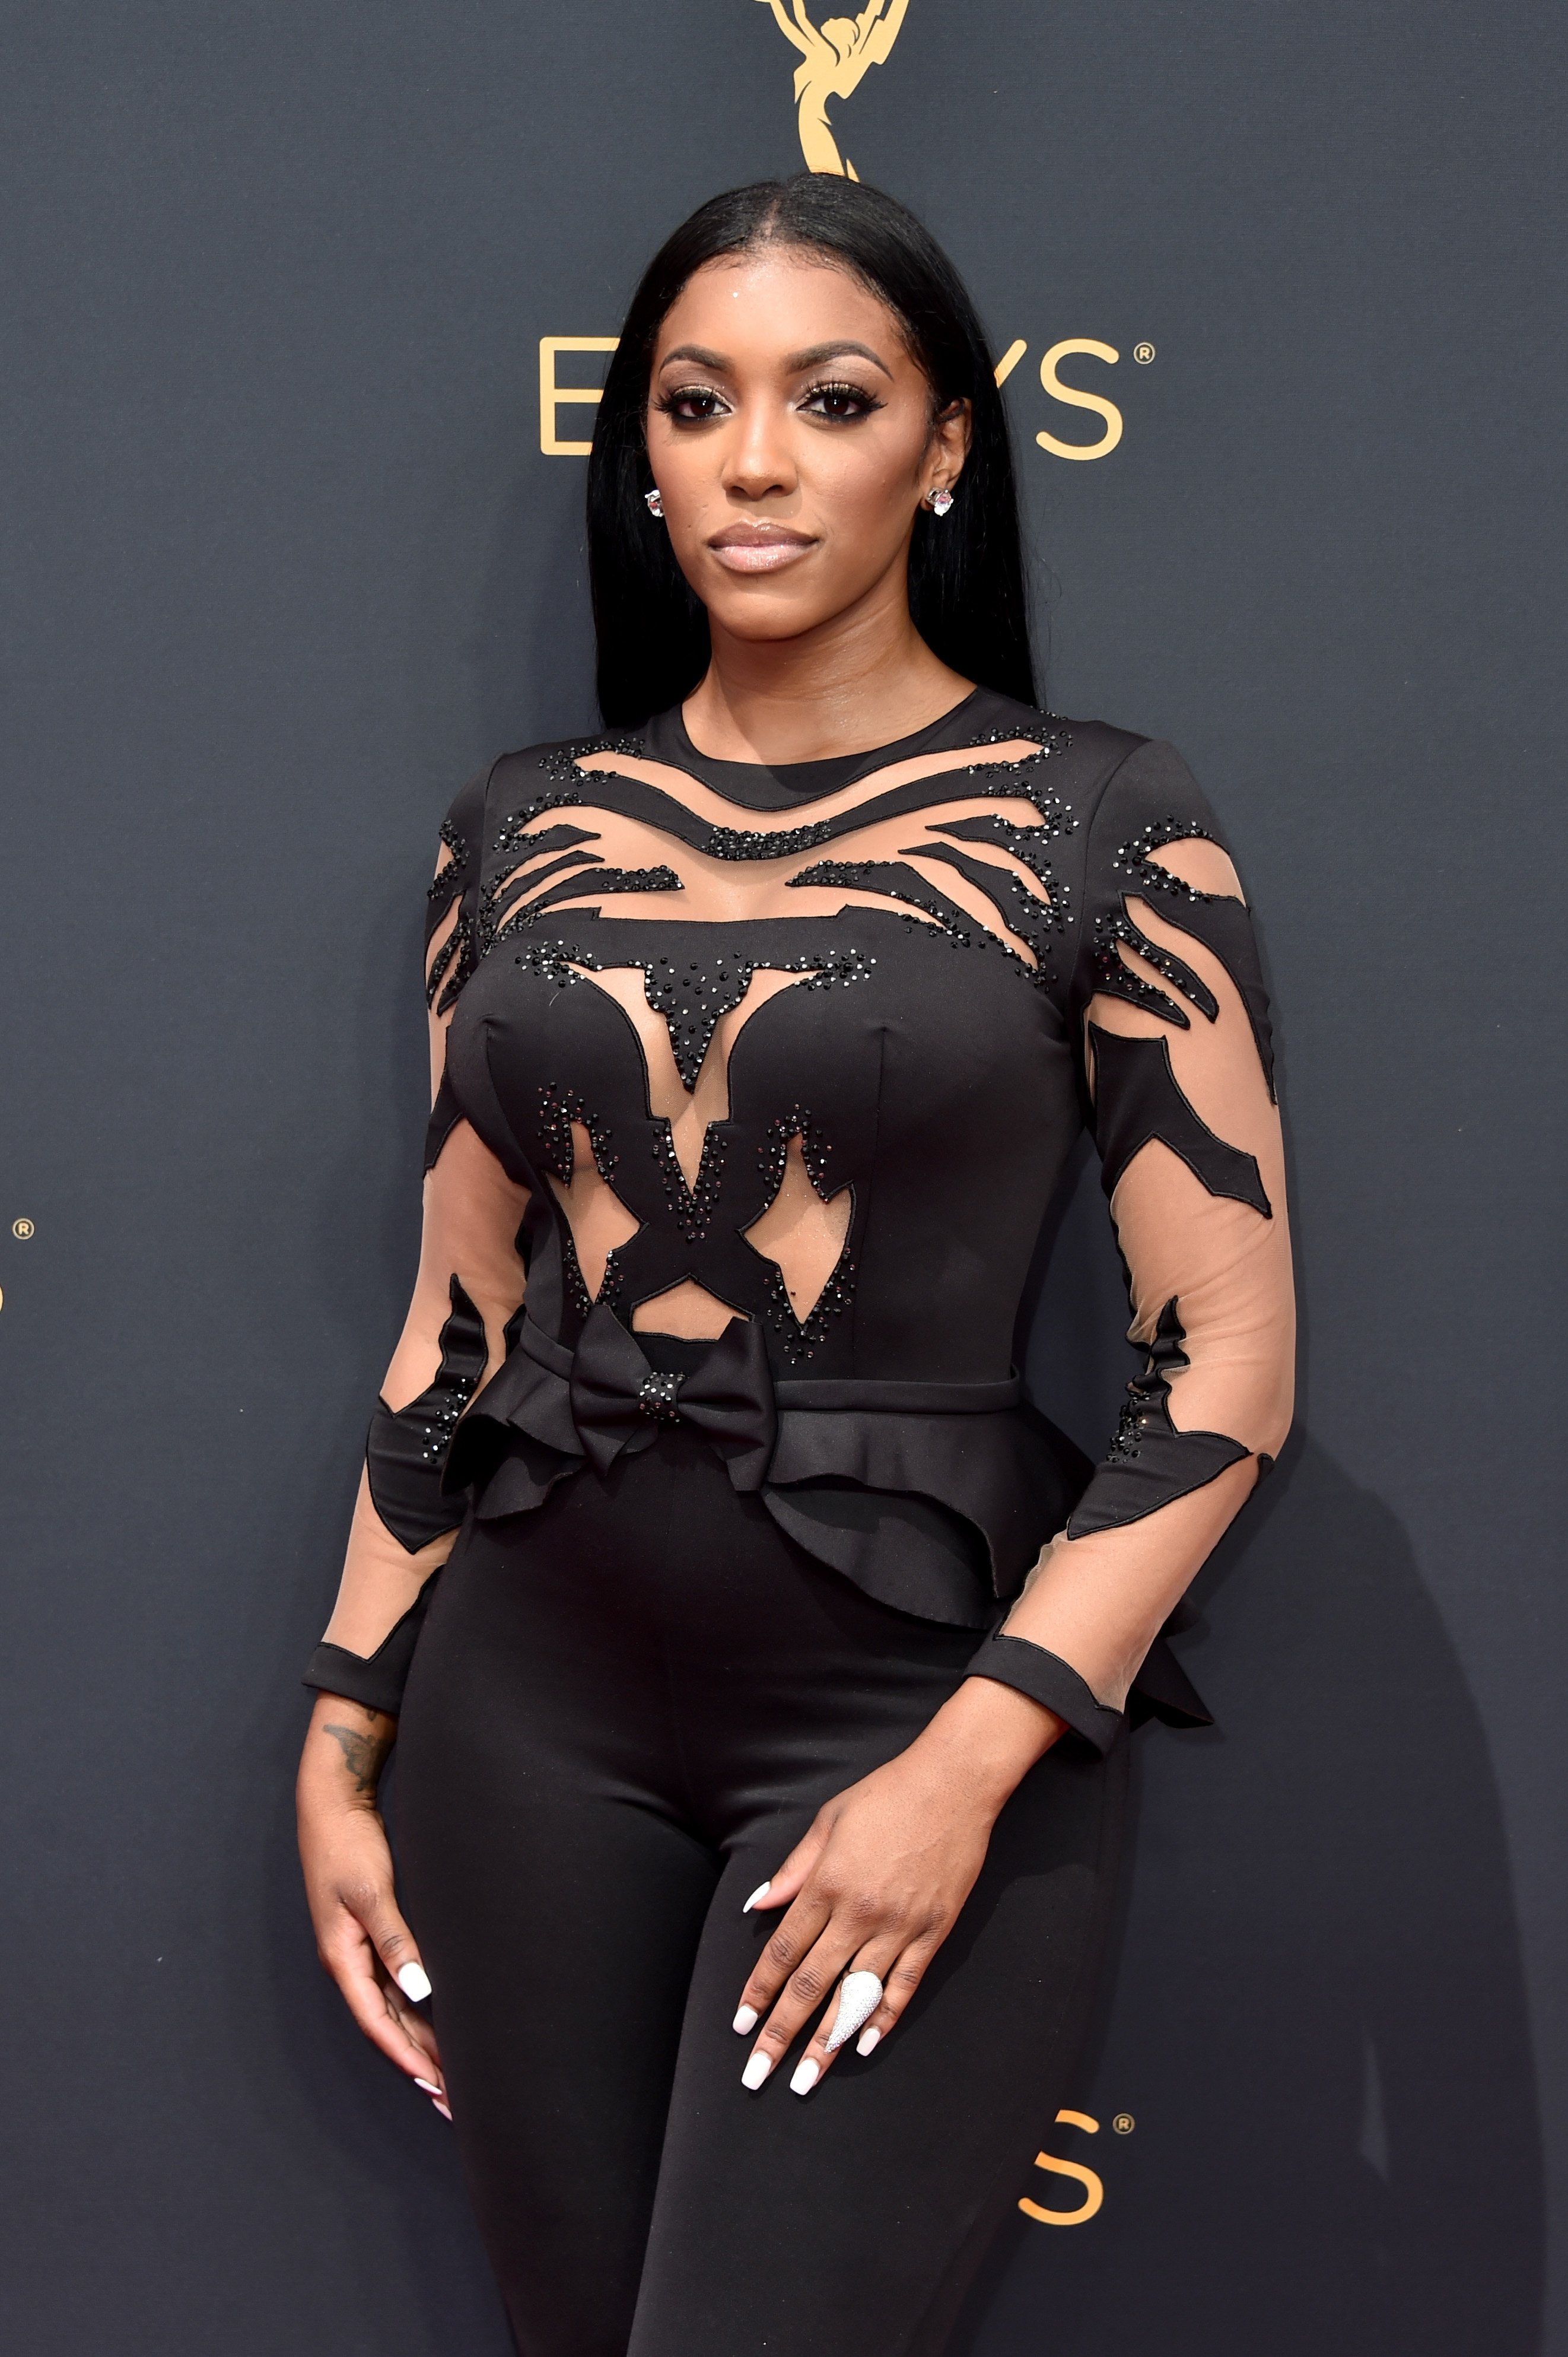 Porsha Williams at the 68th Annual Primetime Emmy Awards at Microsoft Theater on September 18, 2016 in Los Angeles, California.|Source: Getty Images